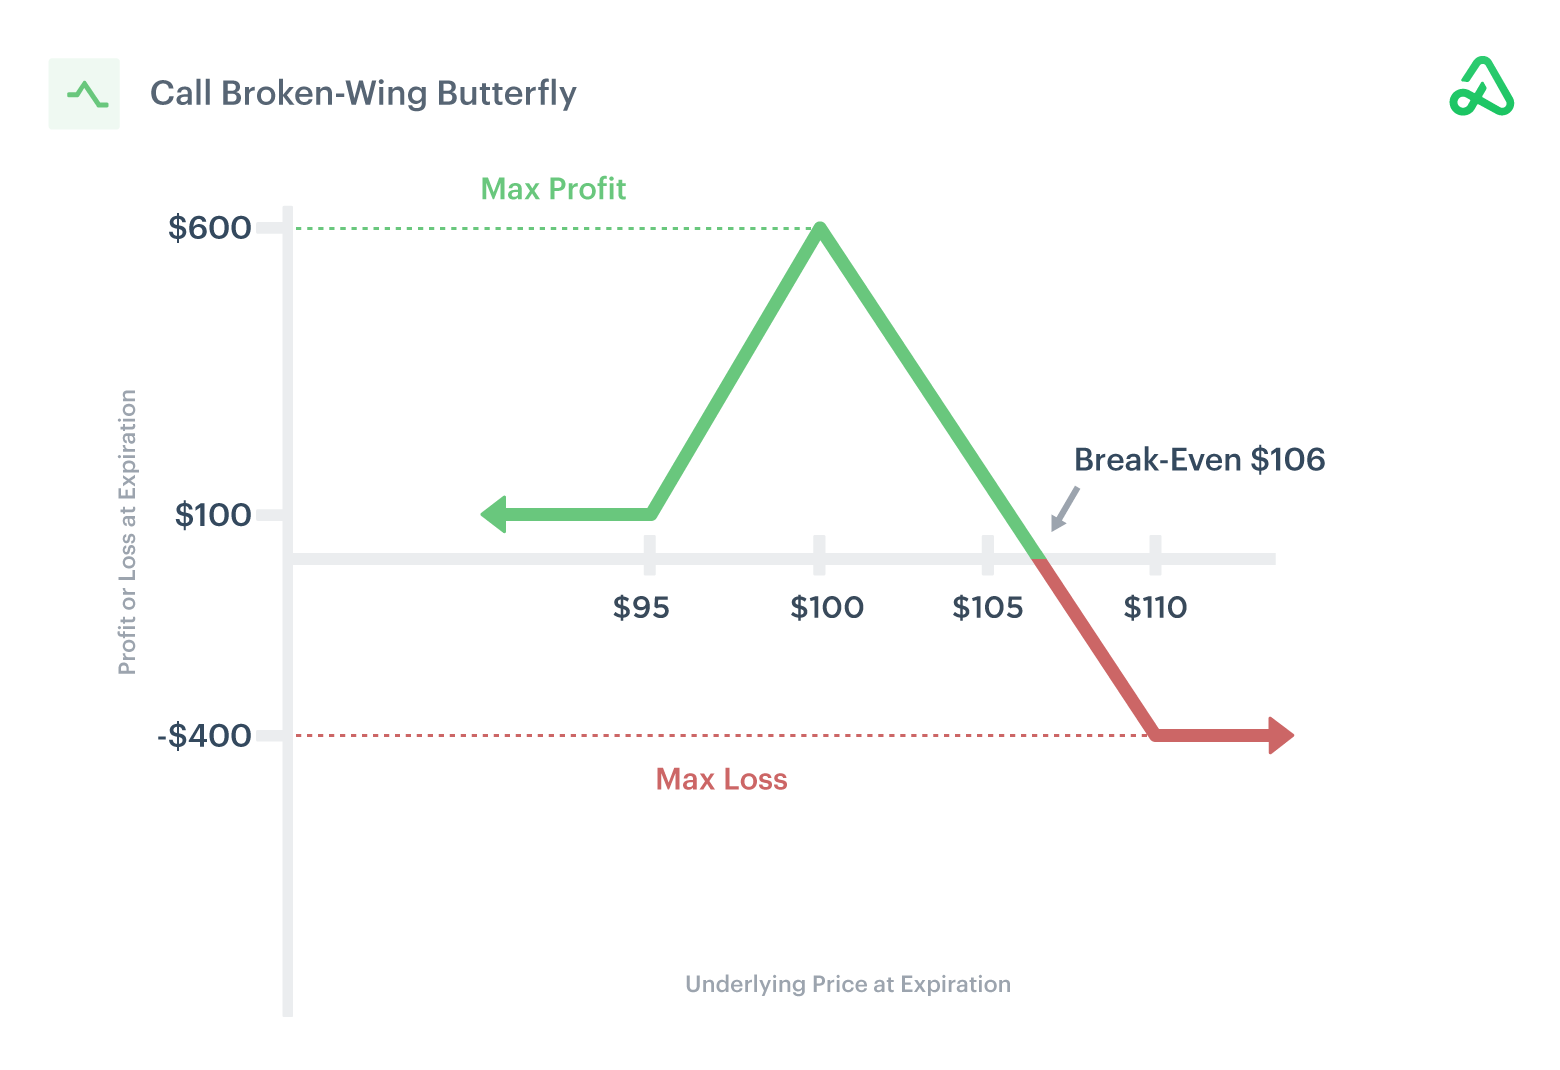 Image of call broken-wing butterfly payoff diagram showing max profit, max loss, and break-even points